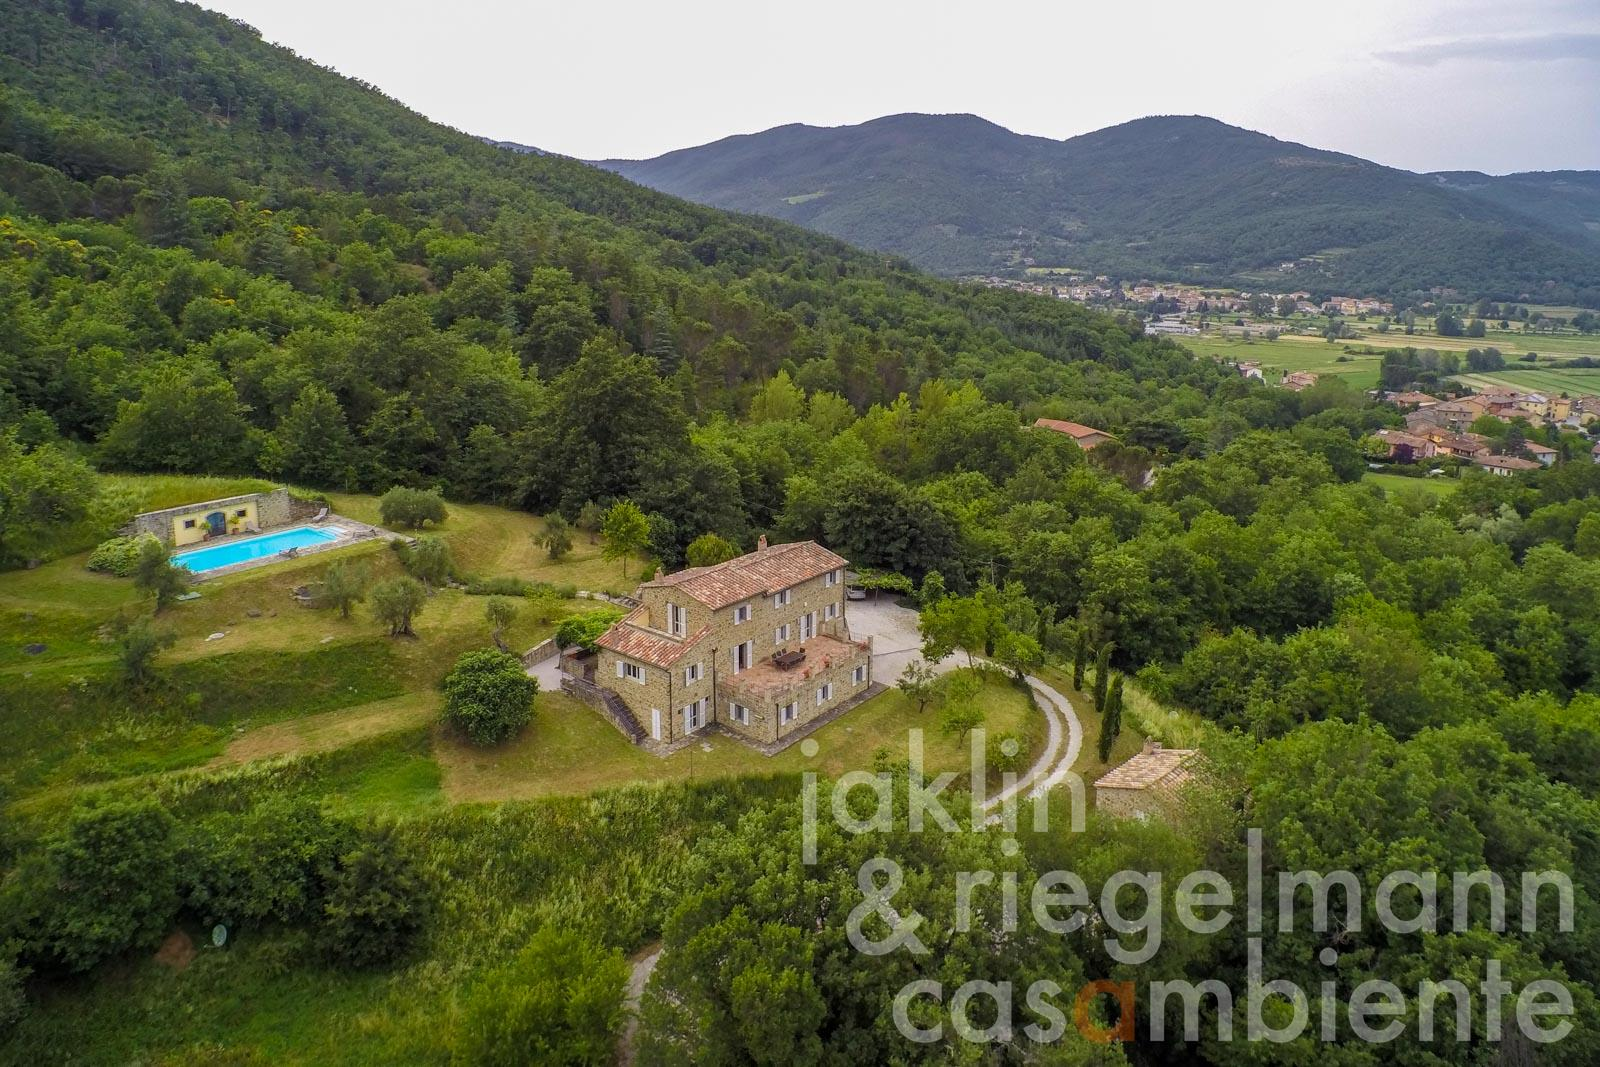 Beautiful country estate with main house, guest house, pool and pool house between Umbria and Tuscany